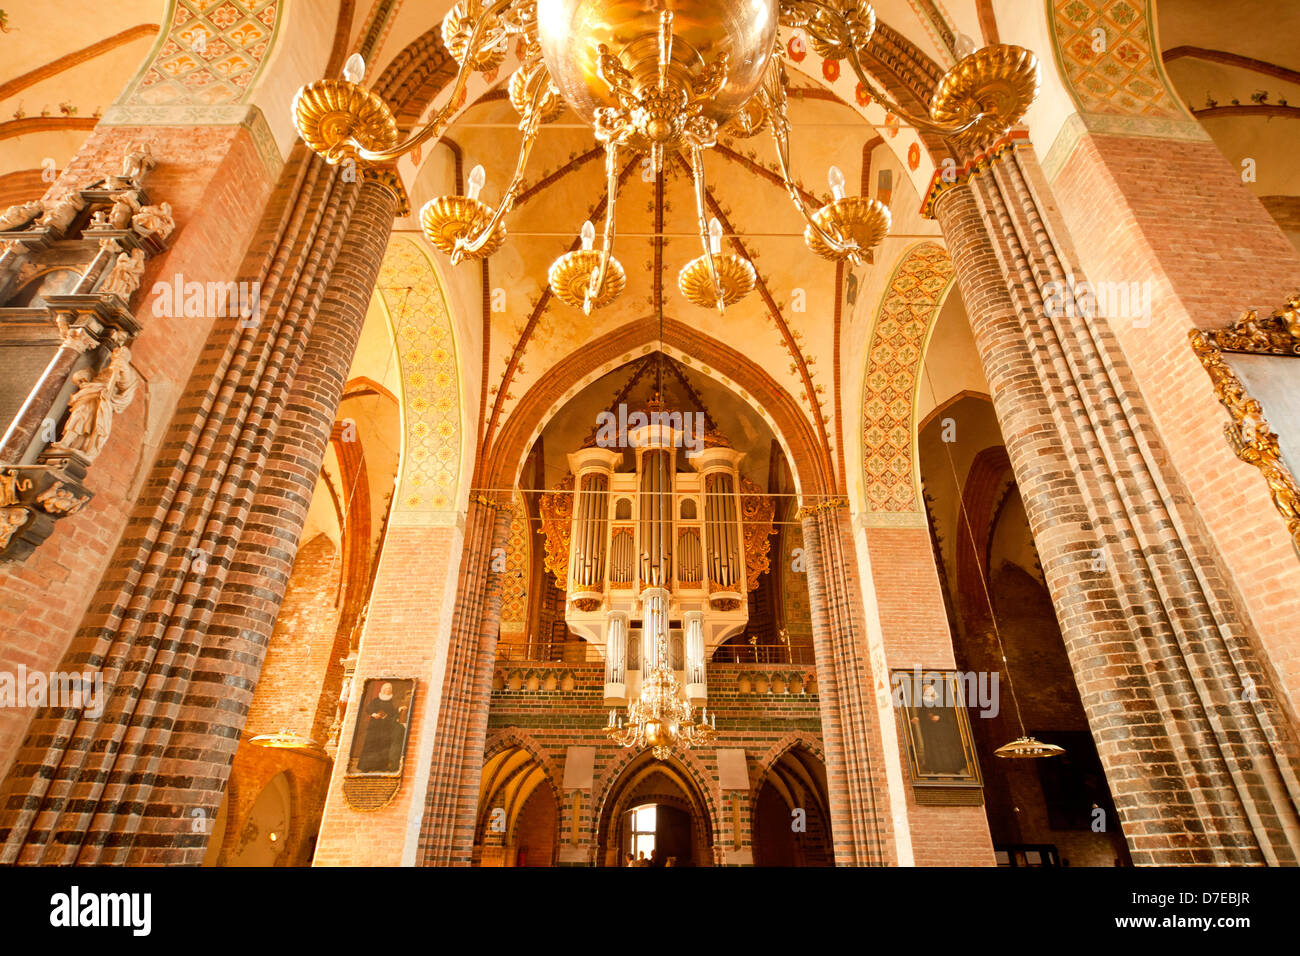 church organ and inside of Schleswig Cathedral, Schleswig, Schleswig-Holstein, Germany, Europe - Stock Image